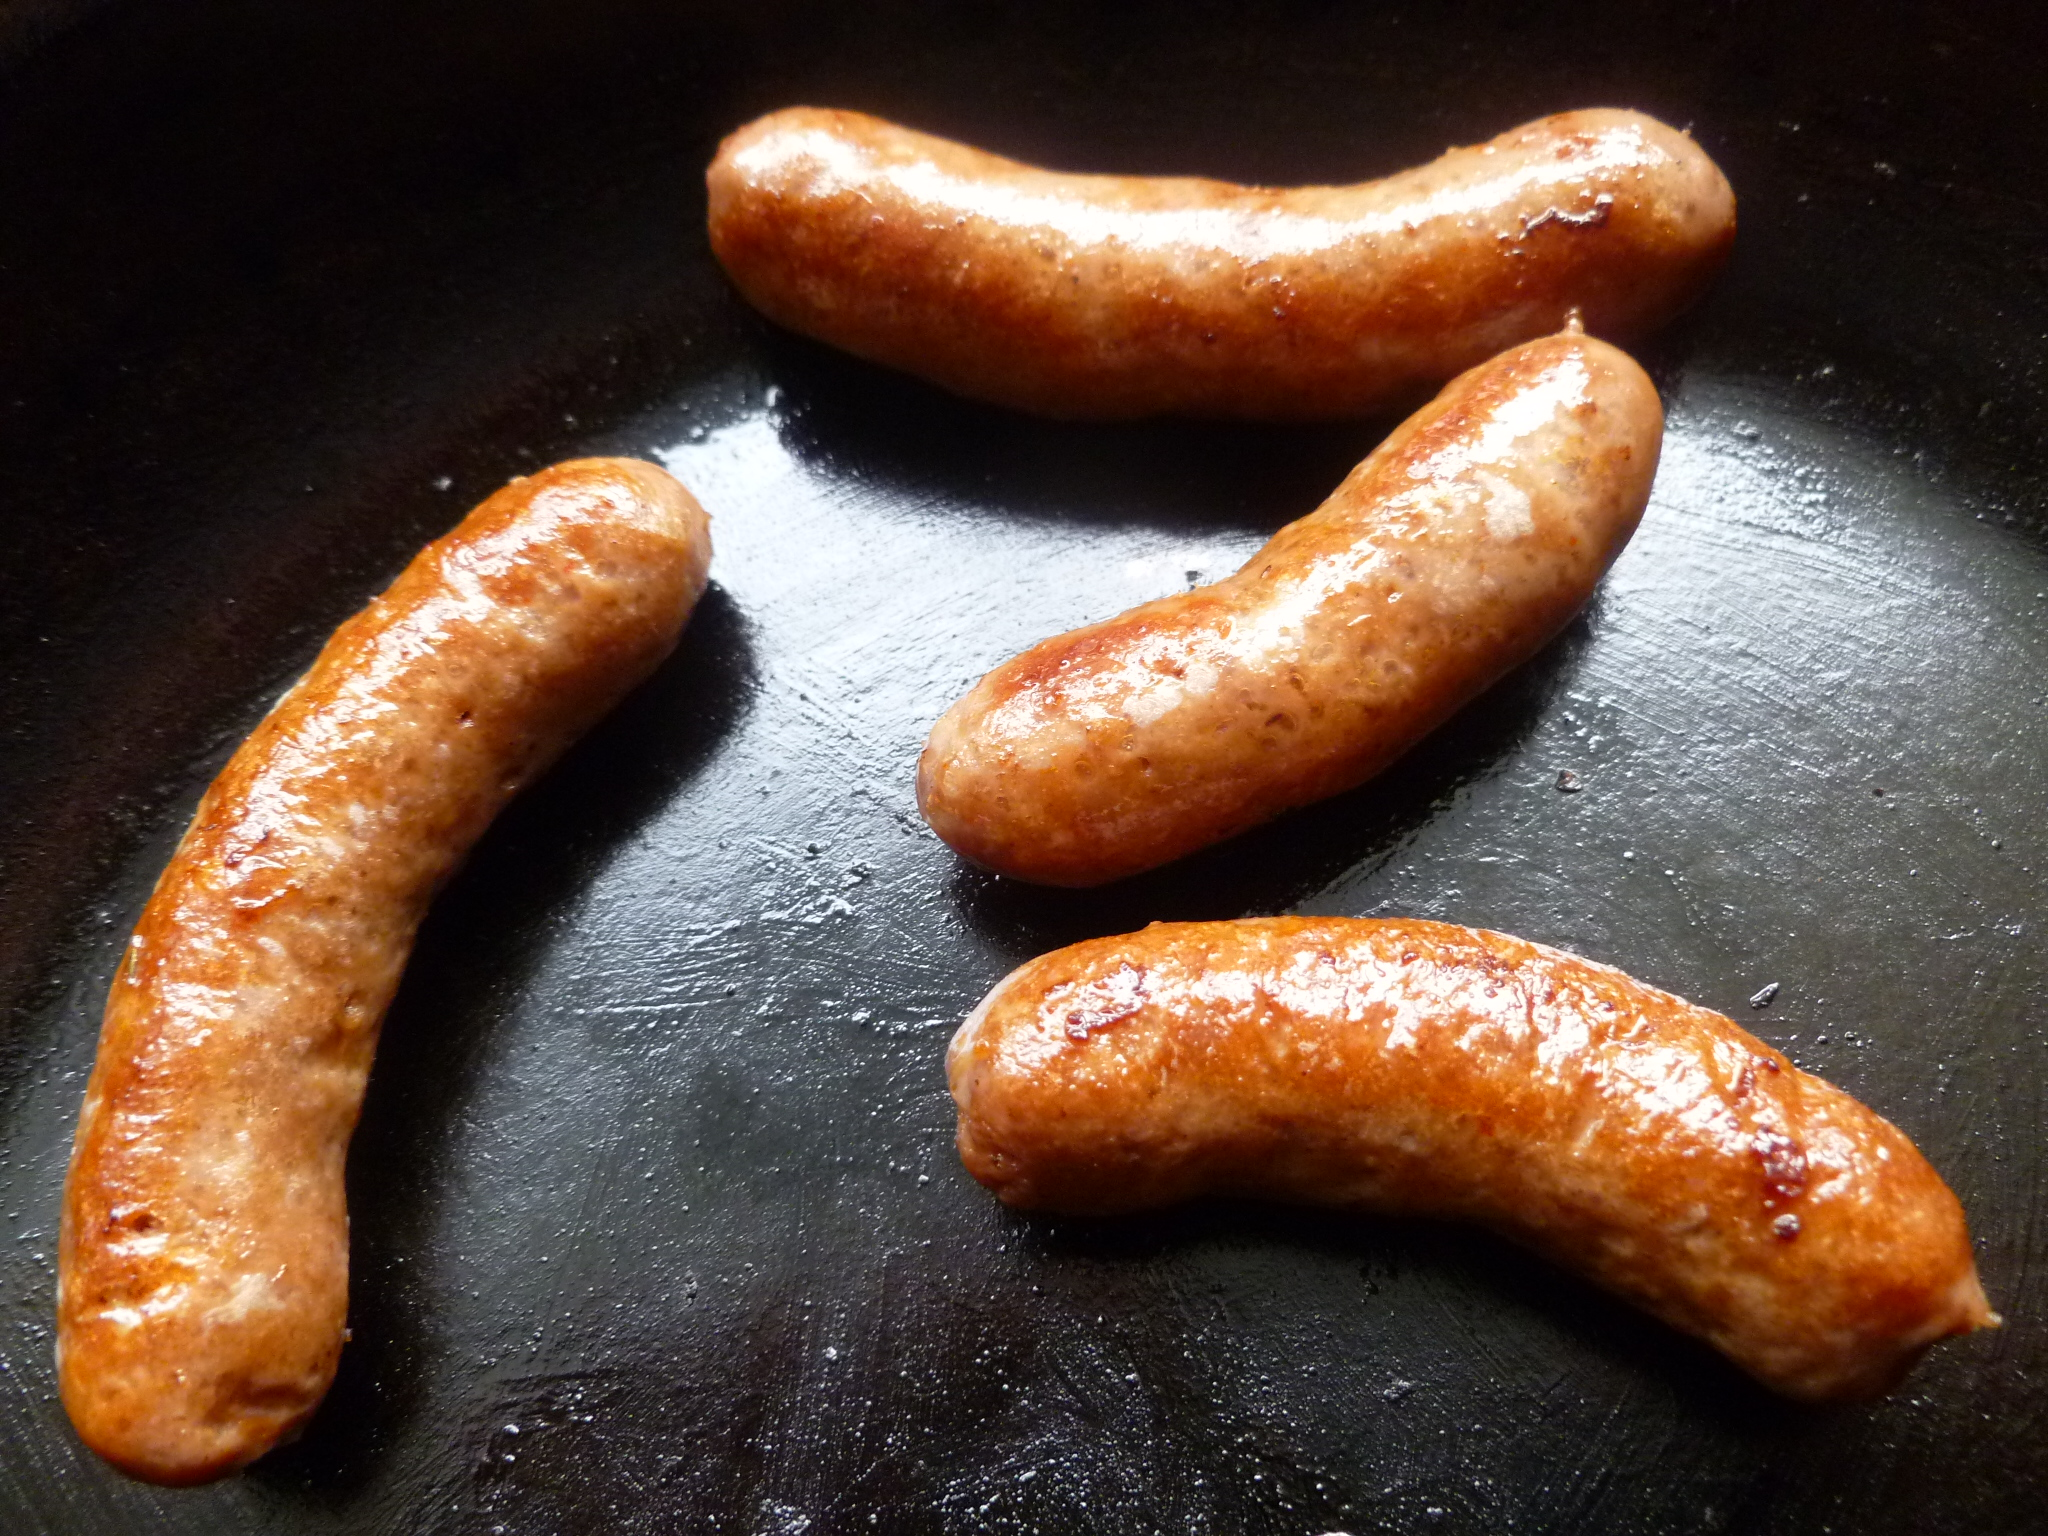 In a little oil, slowly fry the sausages over medium heat until they are cooked through (possibly for 7 minutes), drain them, and set them aside: